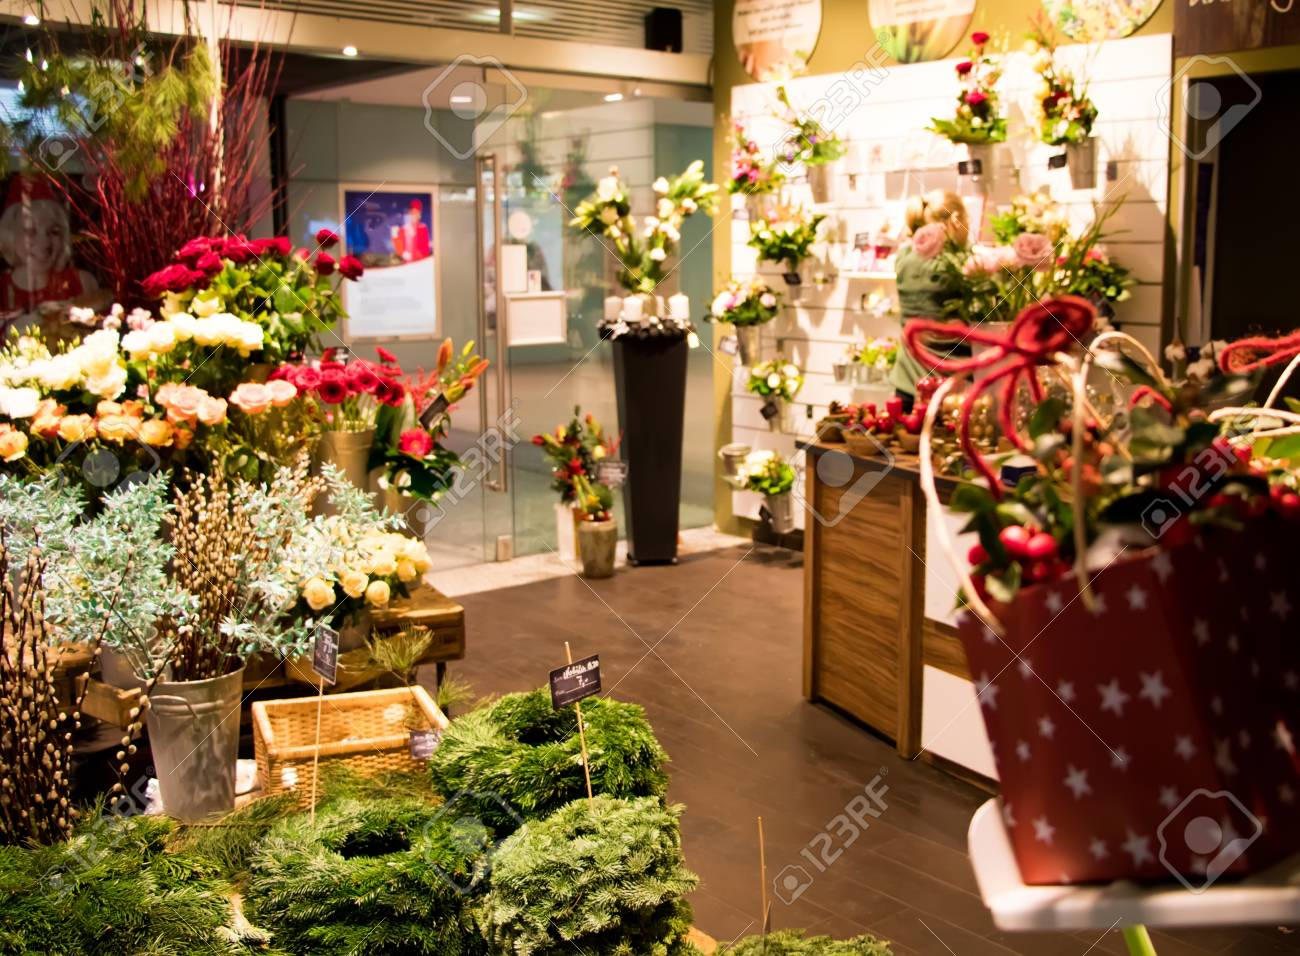 Small Florist Shop Selling Christmas Decoration, Fir Wreaths, Presents And  Flowers. Florist Workplace